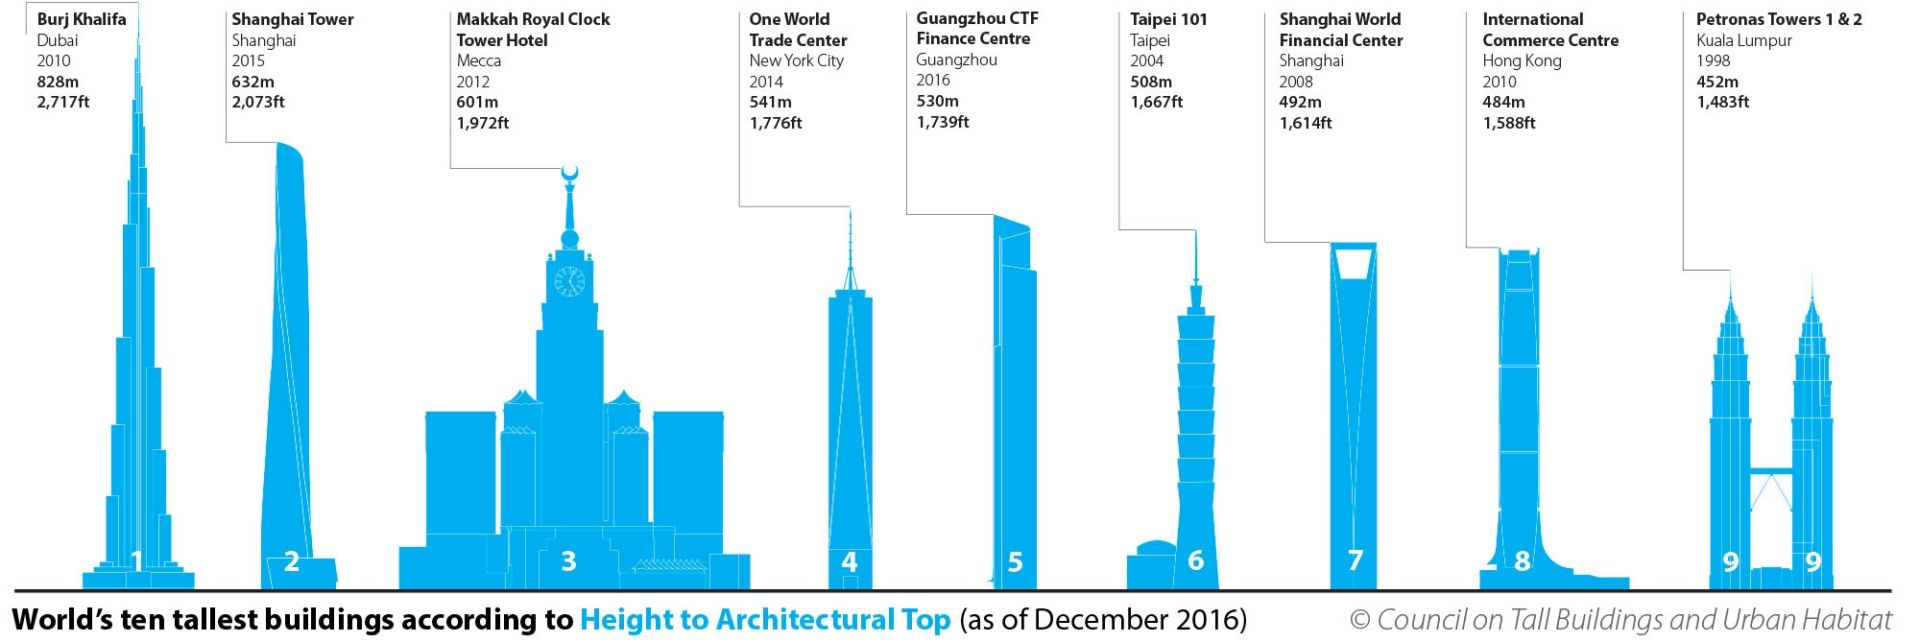 At the end of 2016 the CTBUH updated its ranking of the world's tallest skyscrapers. The Burj Khalifa in Dubai still tops the list, but there is a new building in fifth place, Guangzhou CTF Finance Centre in Guangzhou, China's second tallest skyscraper. #Architecture #Design